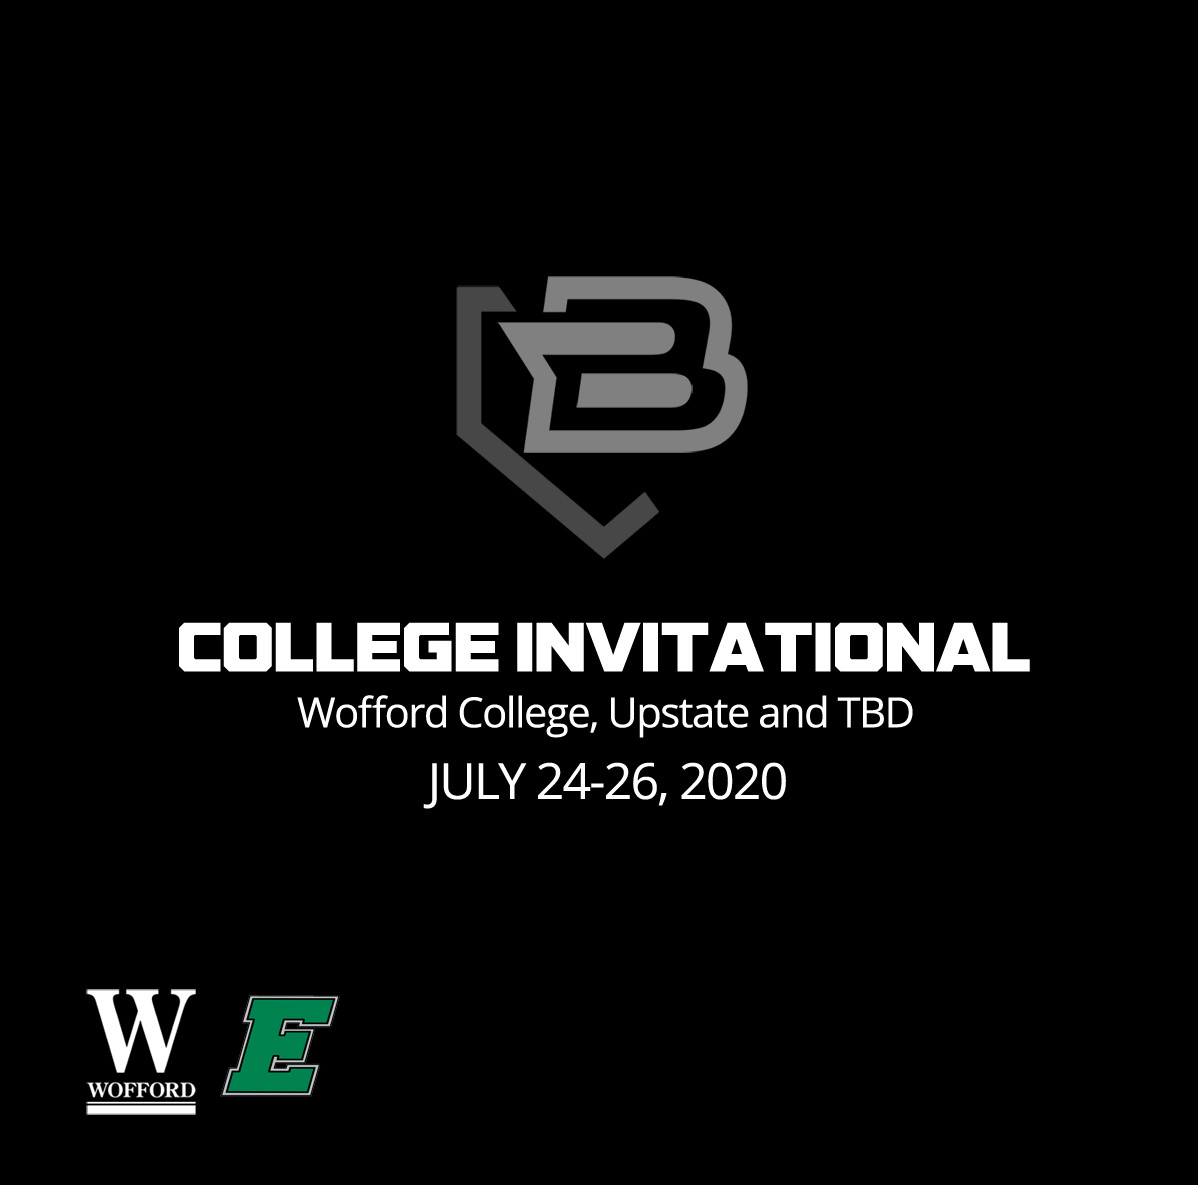 College Invitational v2.0